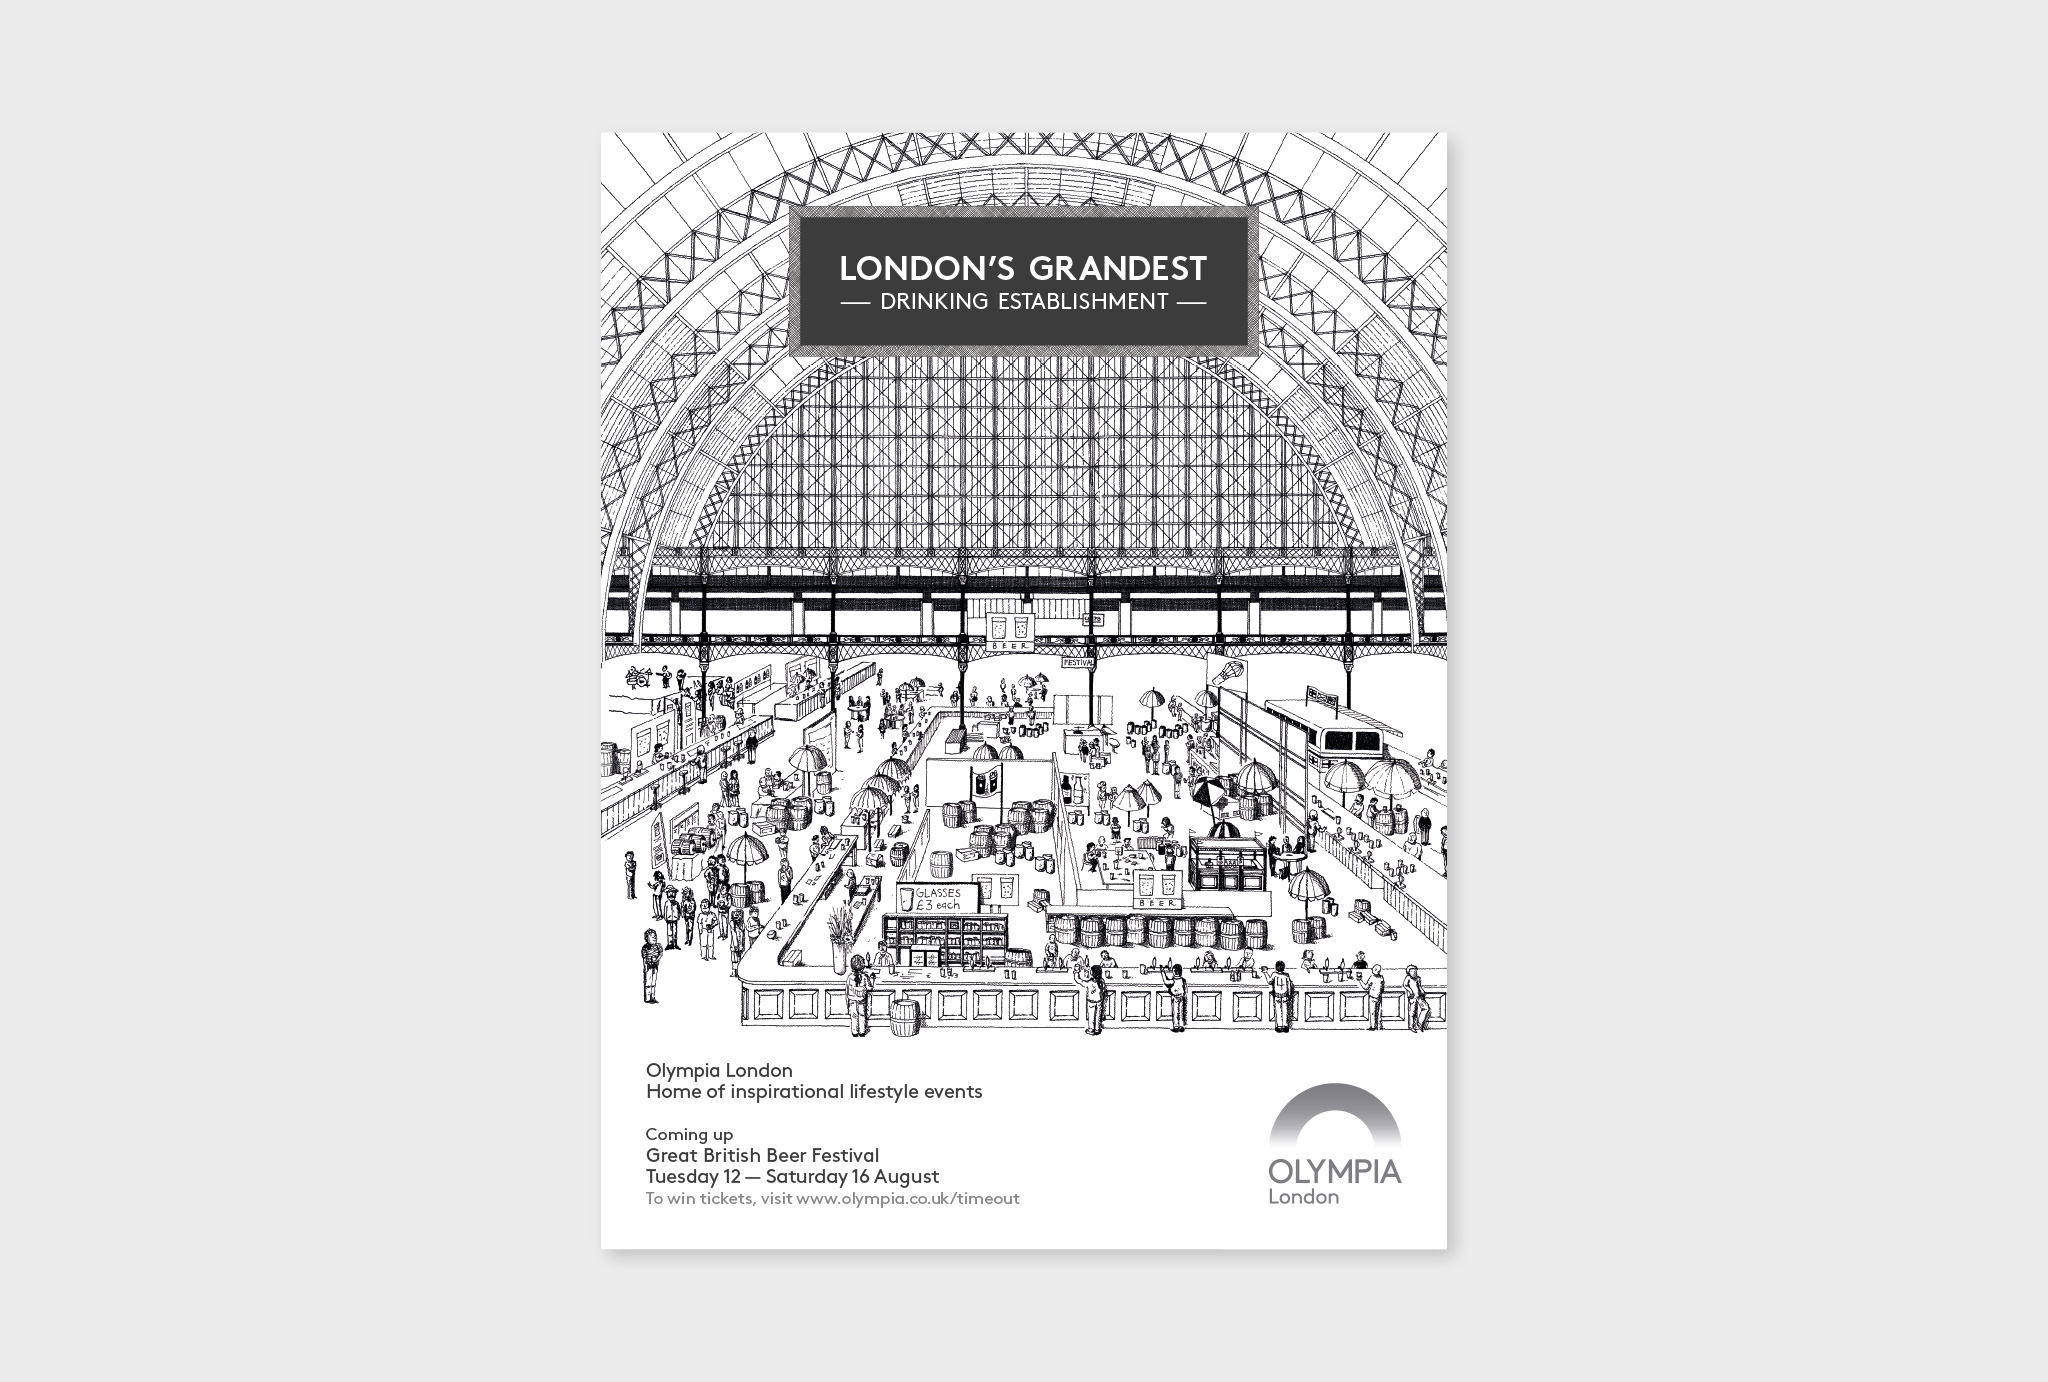 black and white, hand drawn design for London's Grandest DRINKING ESTABLISHMENT